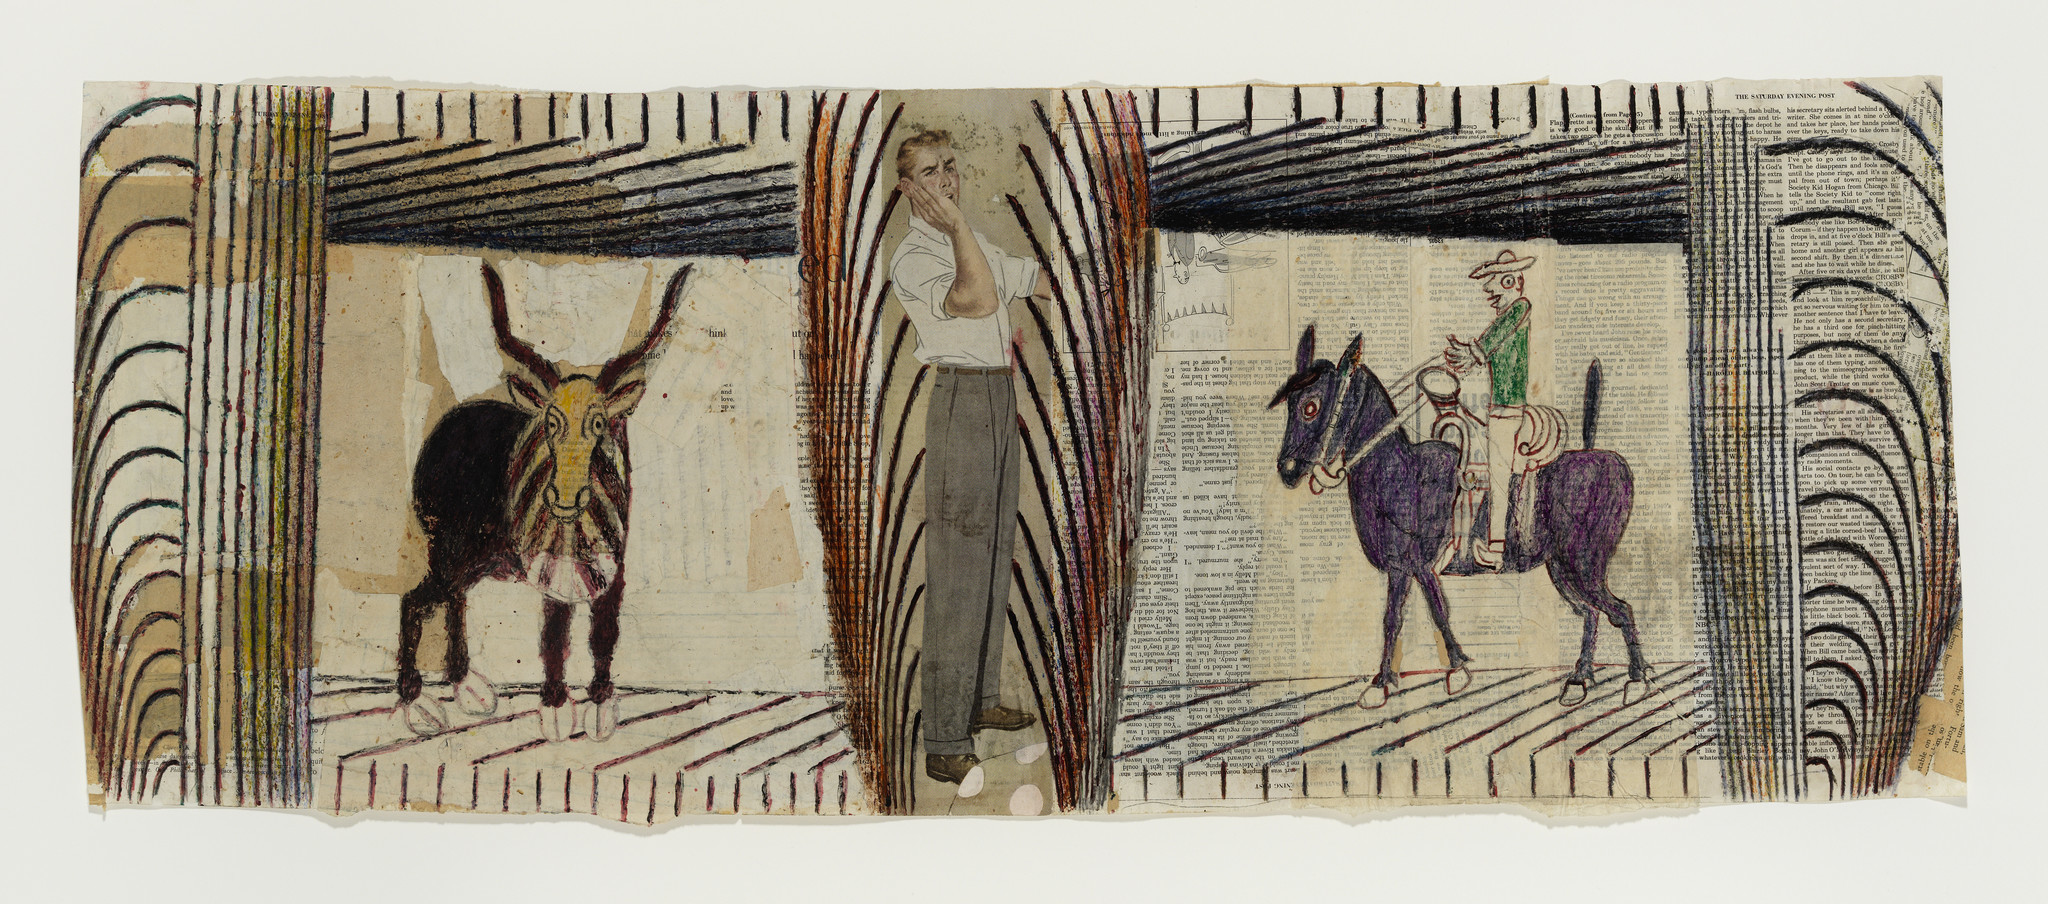 An undated collage-drawing by Martin Ramirez features a male figure sandwiched between a bull and a horse rider.